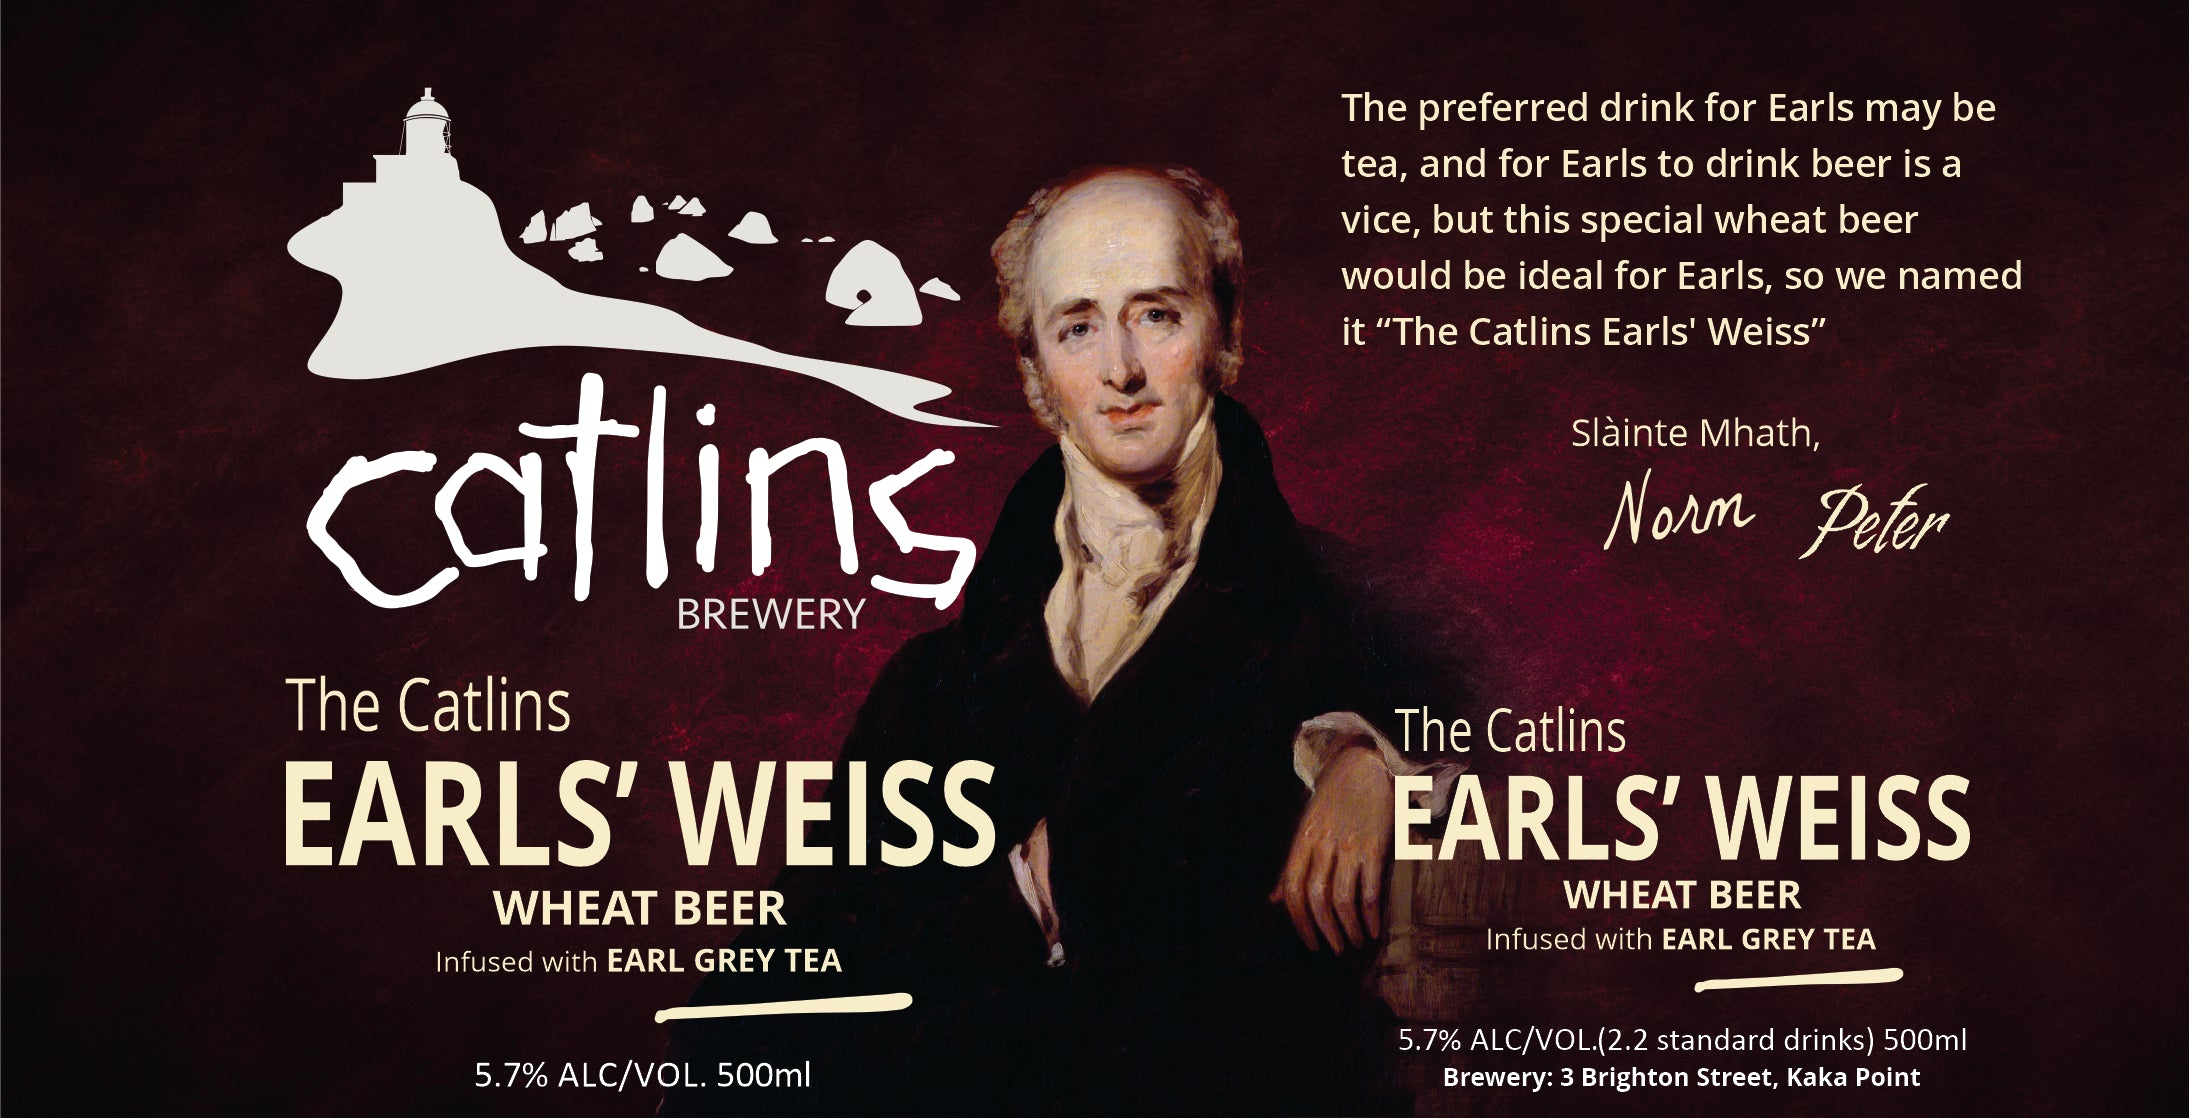 THE CATLINS EARLS' WEISS